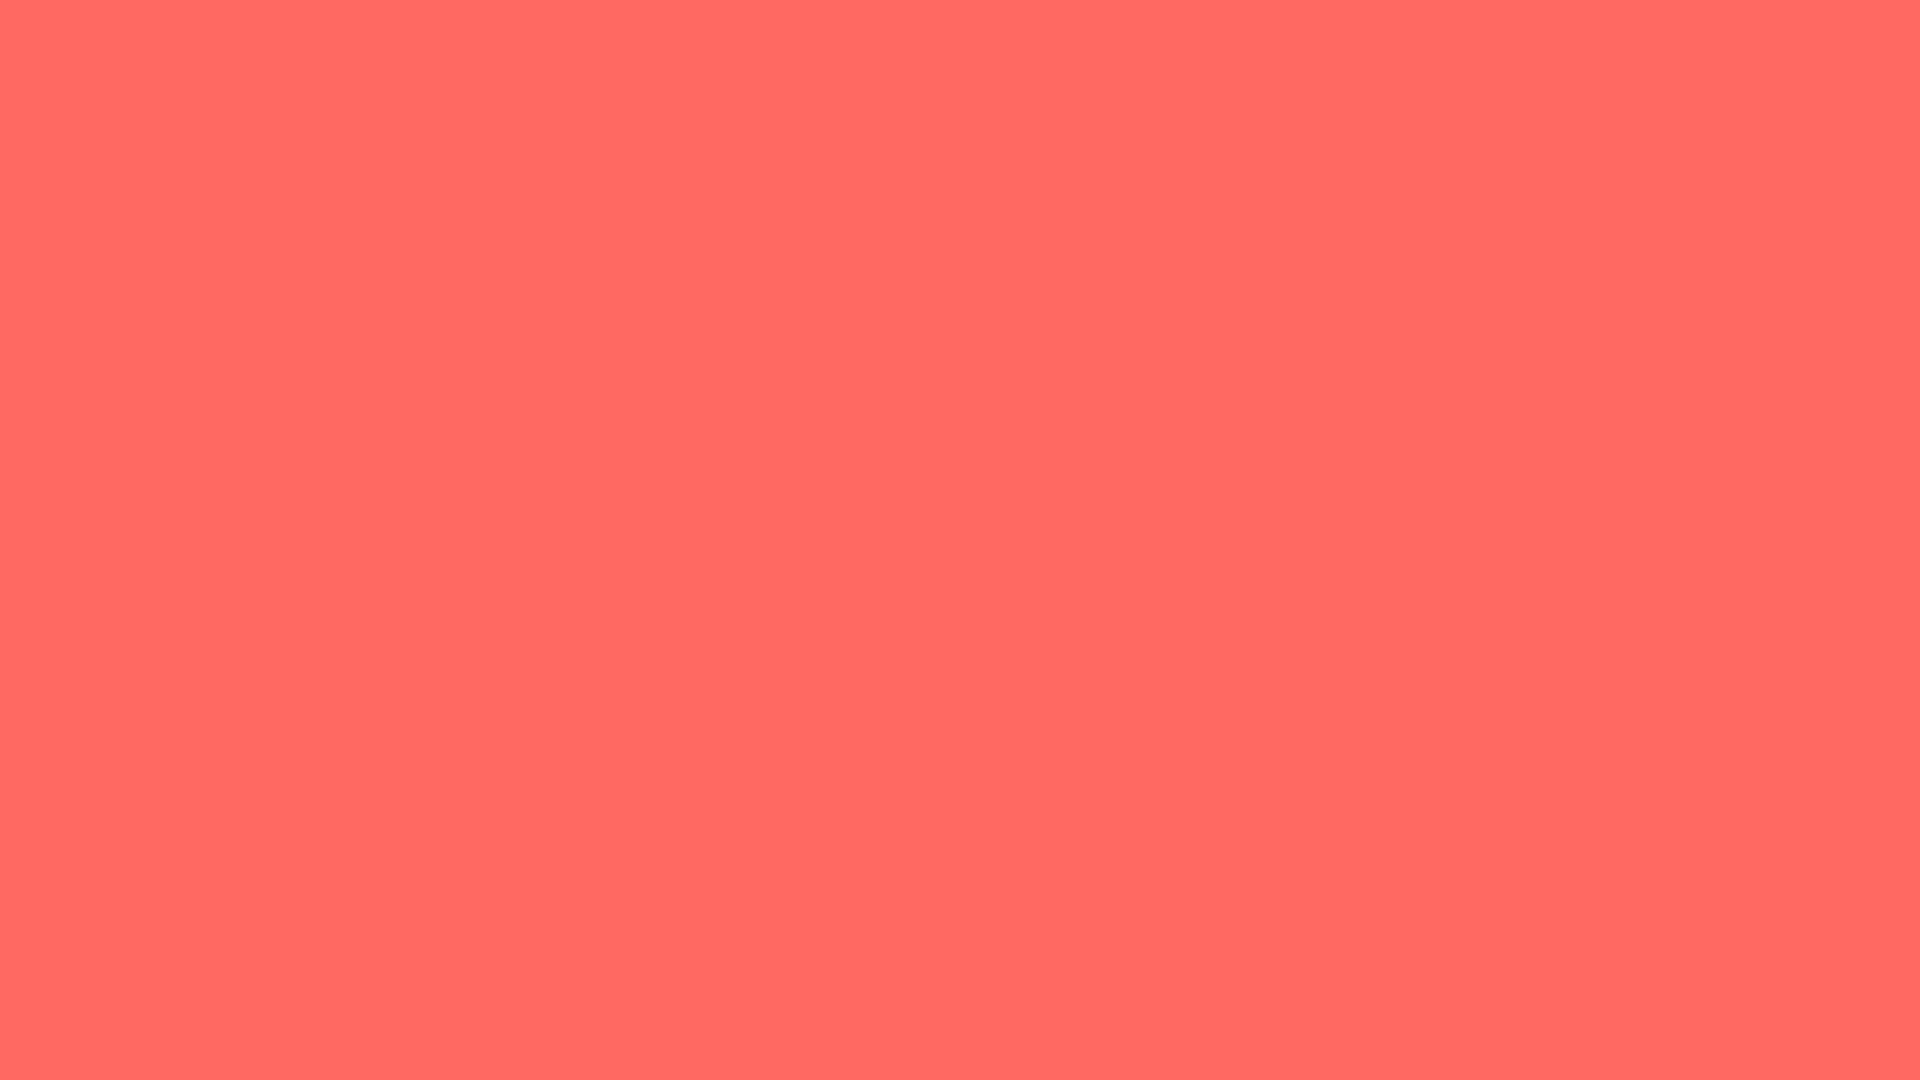 2560x1440 Wallpaper Hd 1920x1080 Pastel Red Solid Color Background